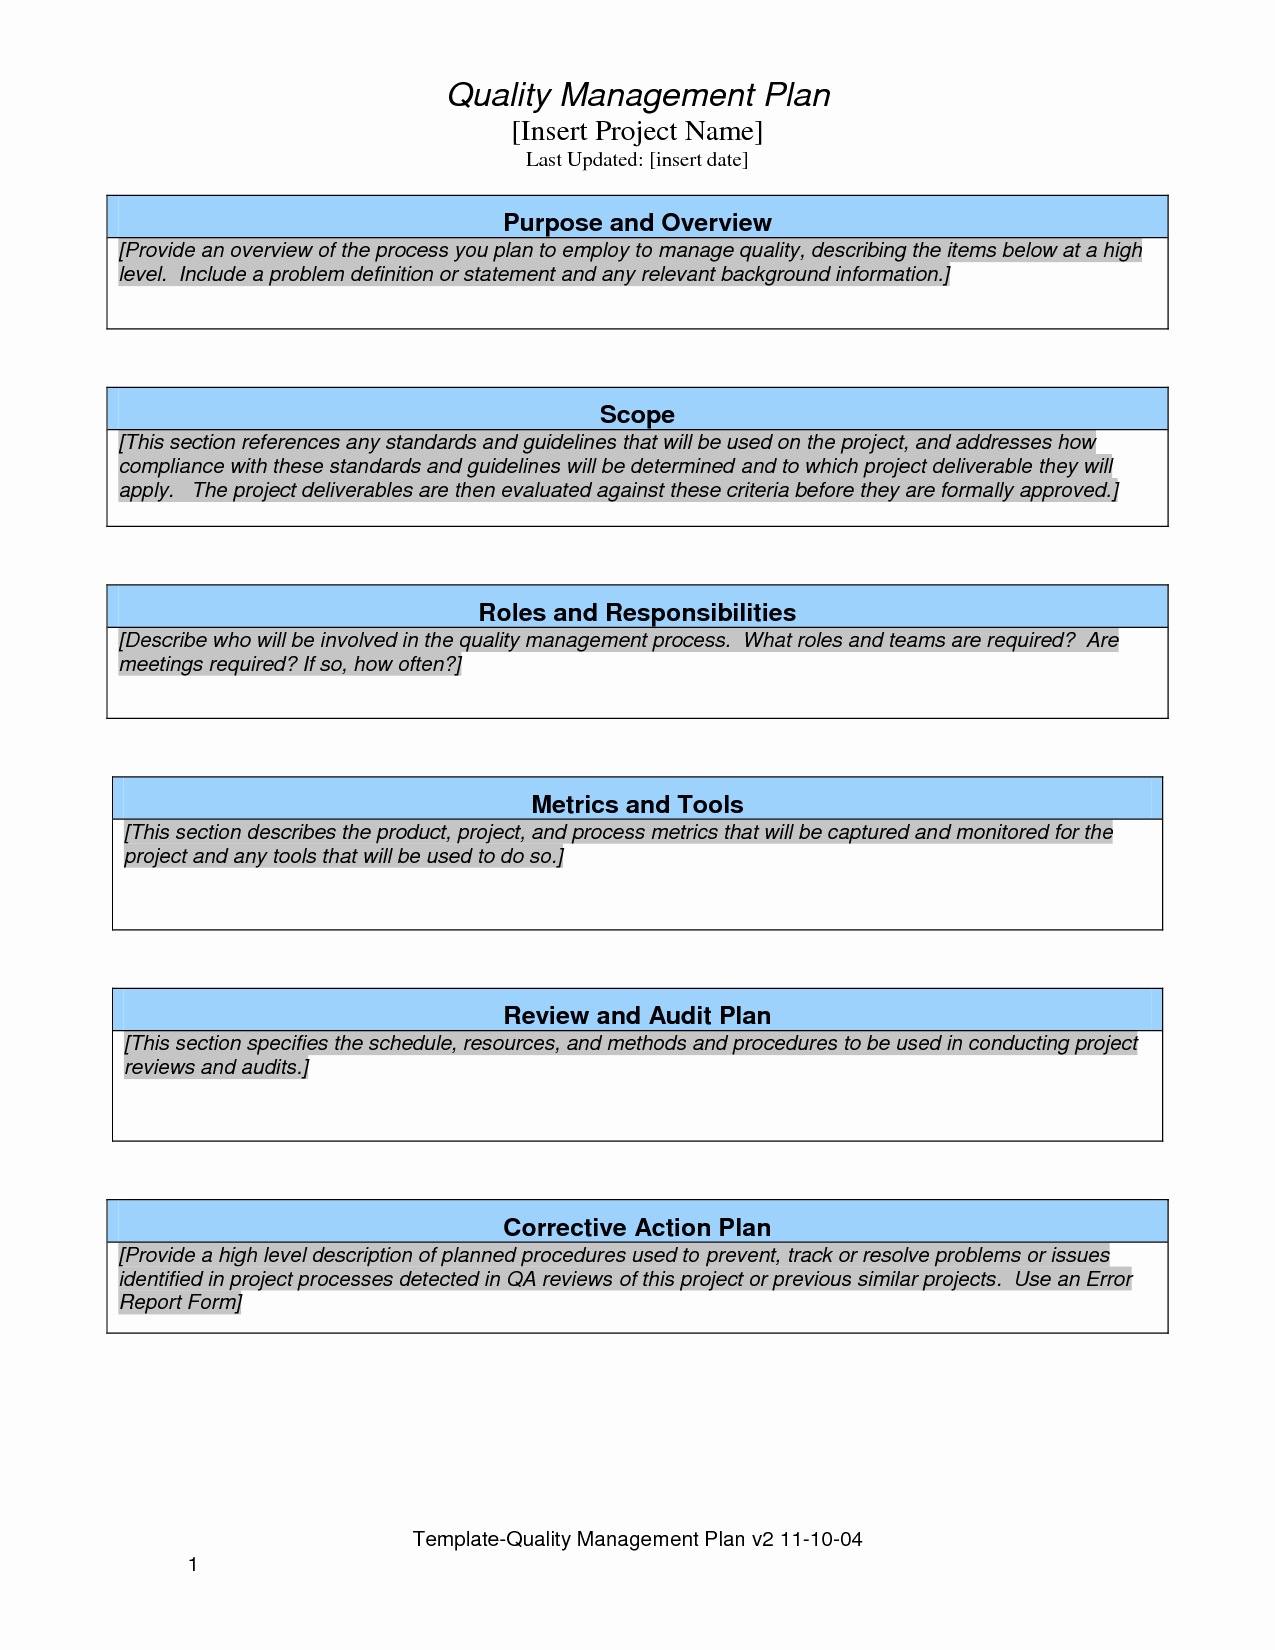 Quality Control Plan Template Excel Fresh Quality Plan Template Project Management